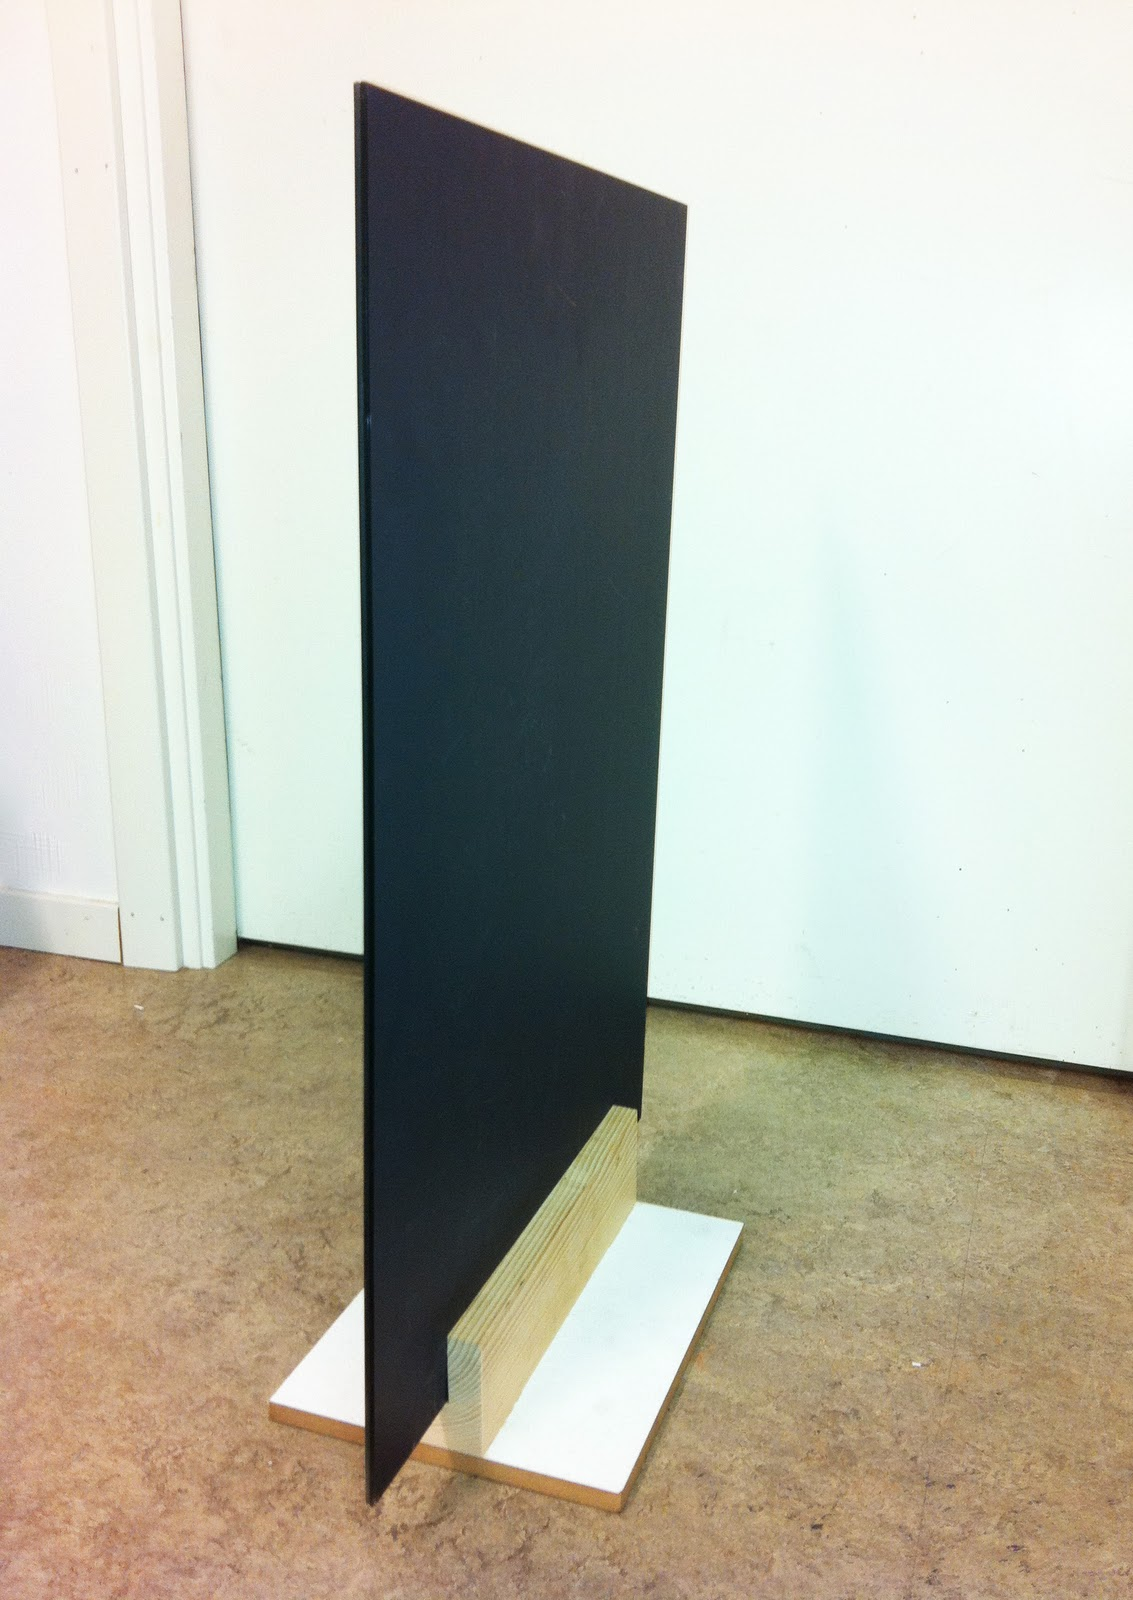 Sculpture. Mirrors, wood. 2011